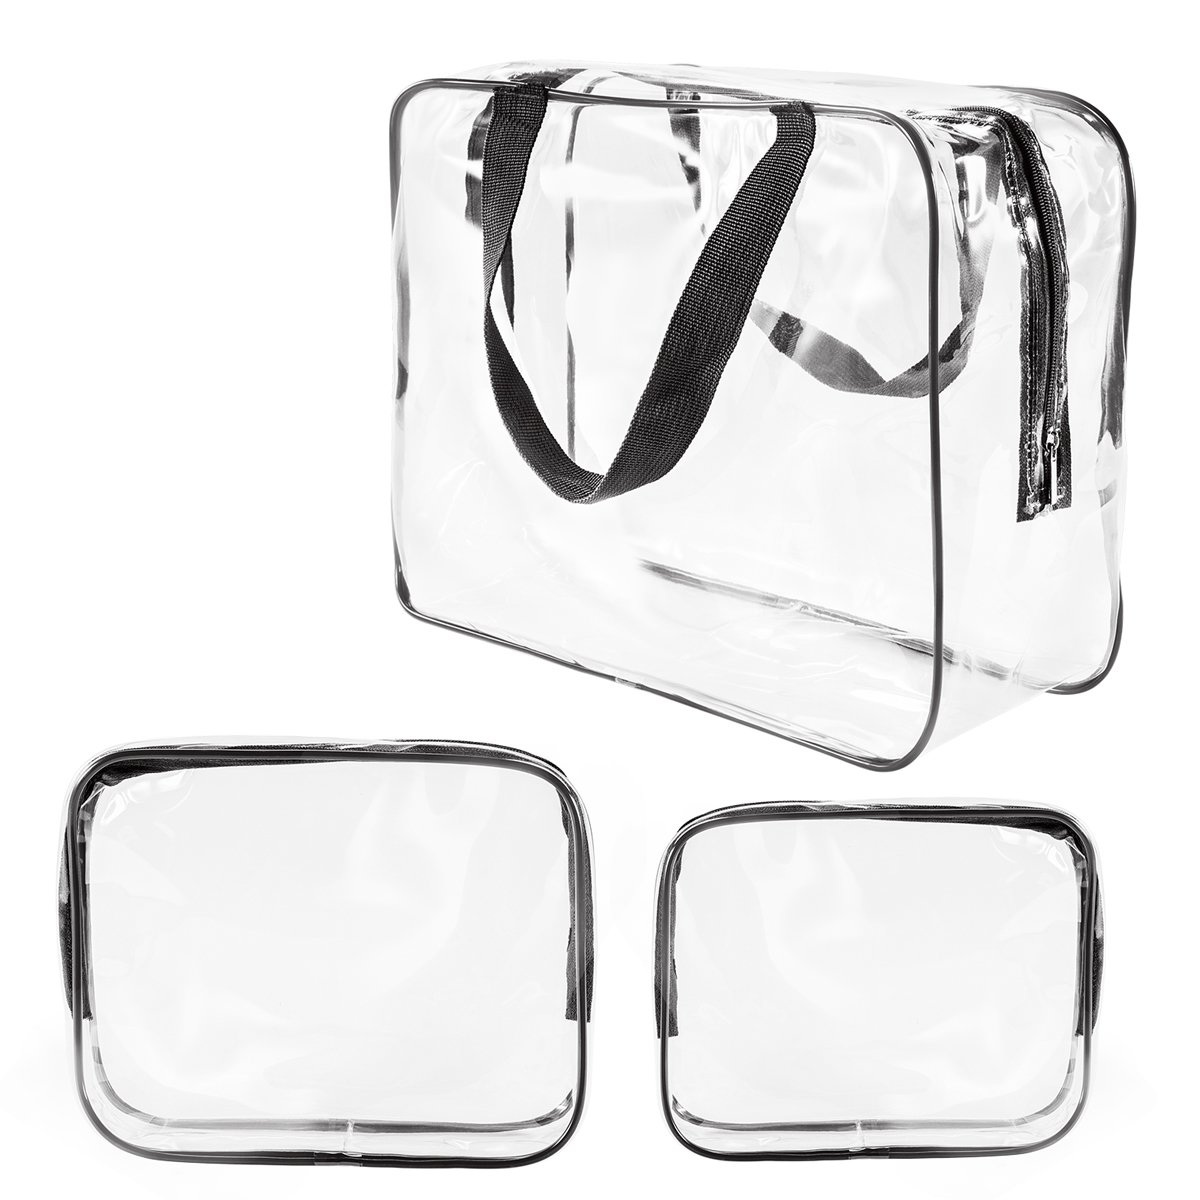 3Pcs Crystal Clear Cosmetic Bag TSA Air Travel Toiletry Bag Set with Zipper Vinyl PVC Make-up Pouch Handle Straps for Women Men, Roybens Waterproof Packing Organizer Storage Diaper Pencil Bags Black